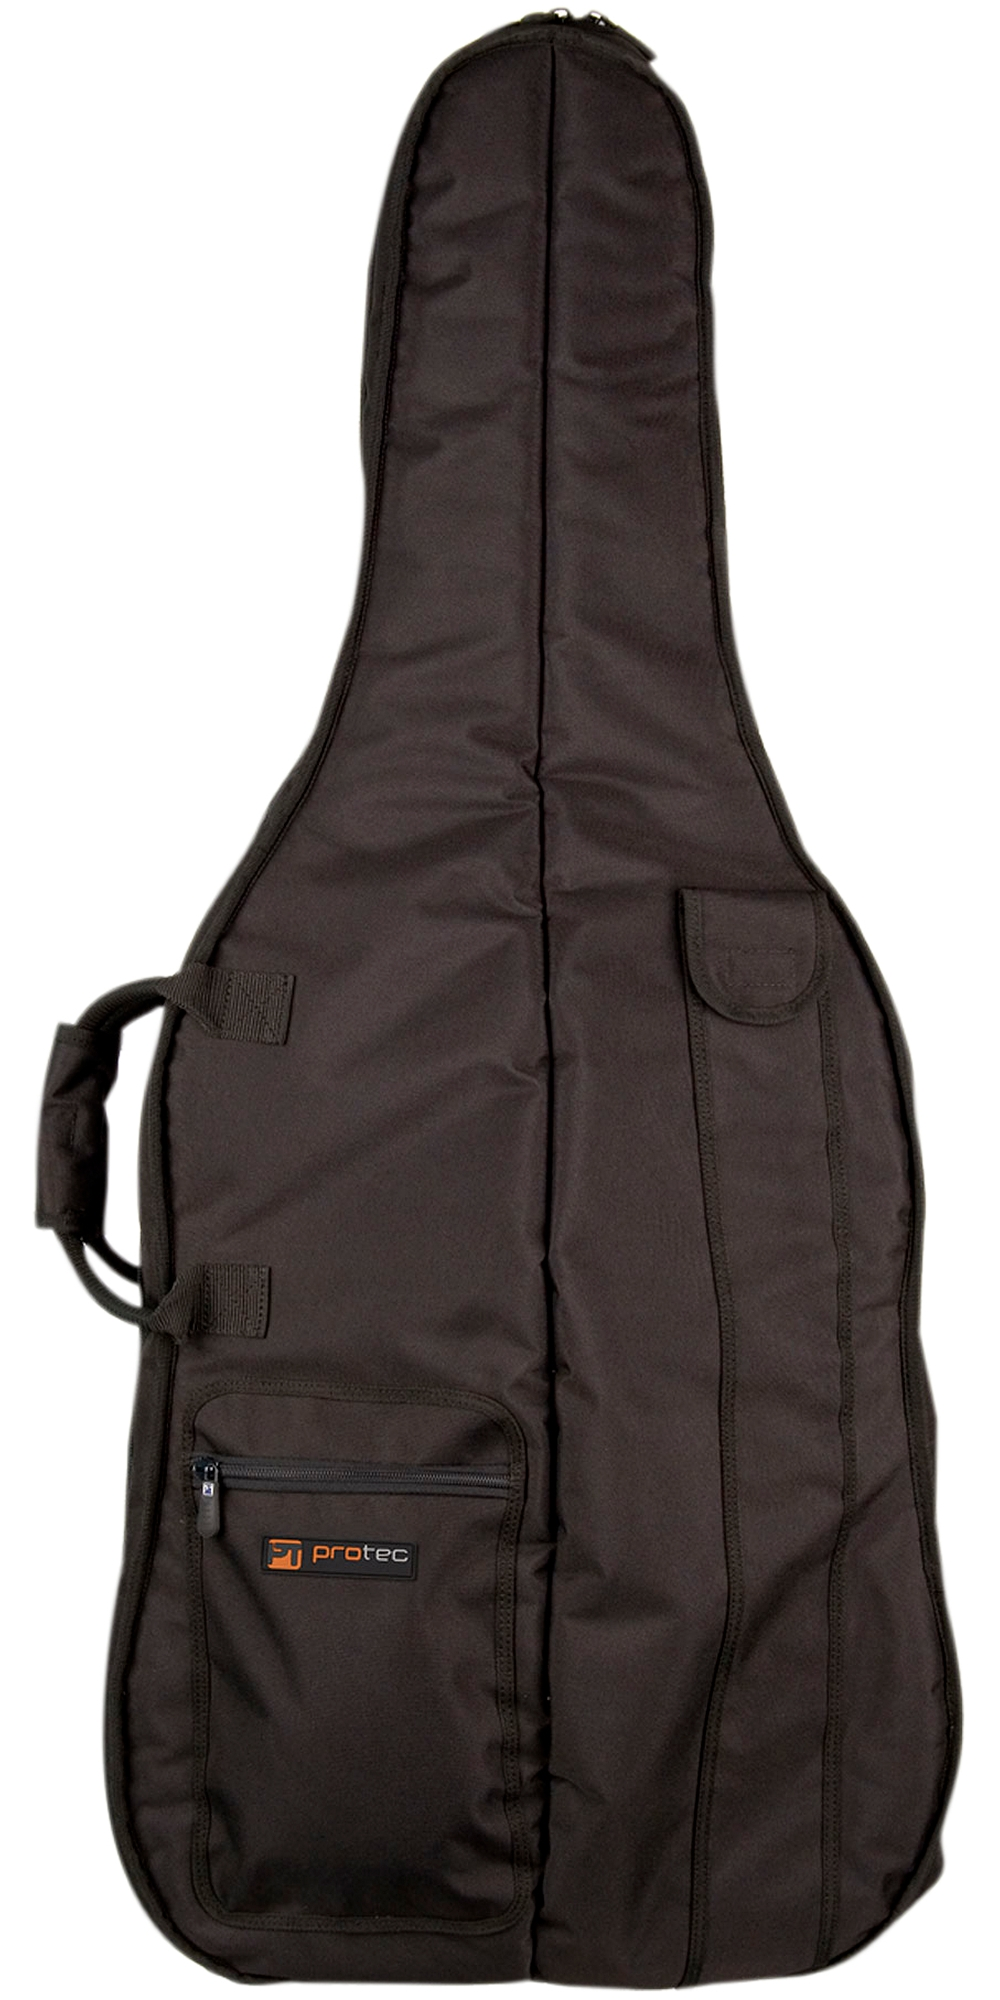 Standard Cello Bag by Protec